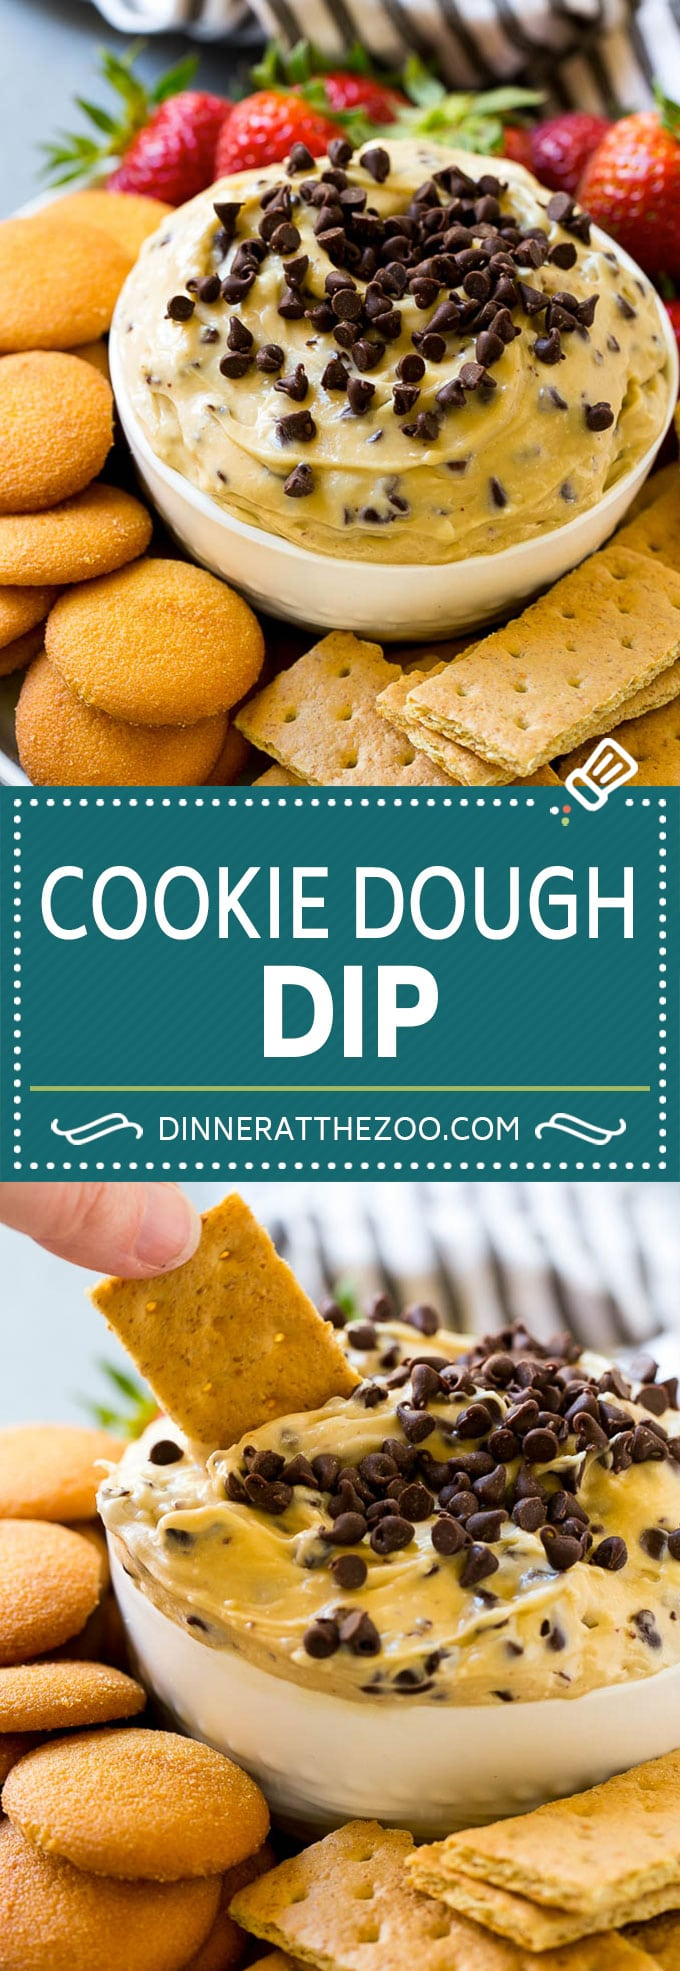 Cookie Dough Dip Recipe | Edible Cookie Dough | Chocolate Chip Cookie Dip #cookies #dip #cookiedough #dessert #snack #dinneratthezoo